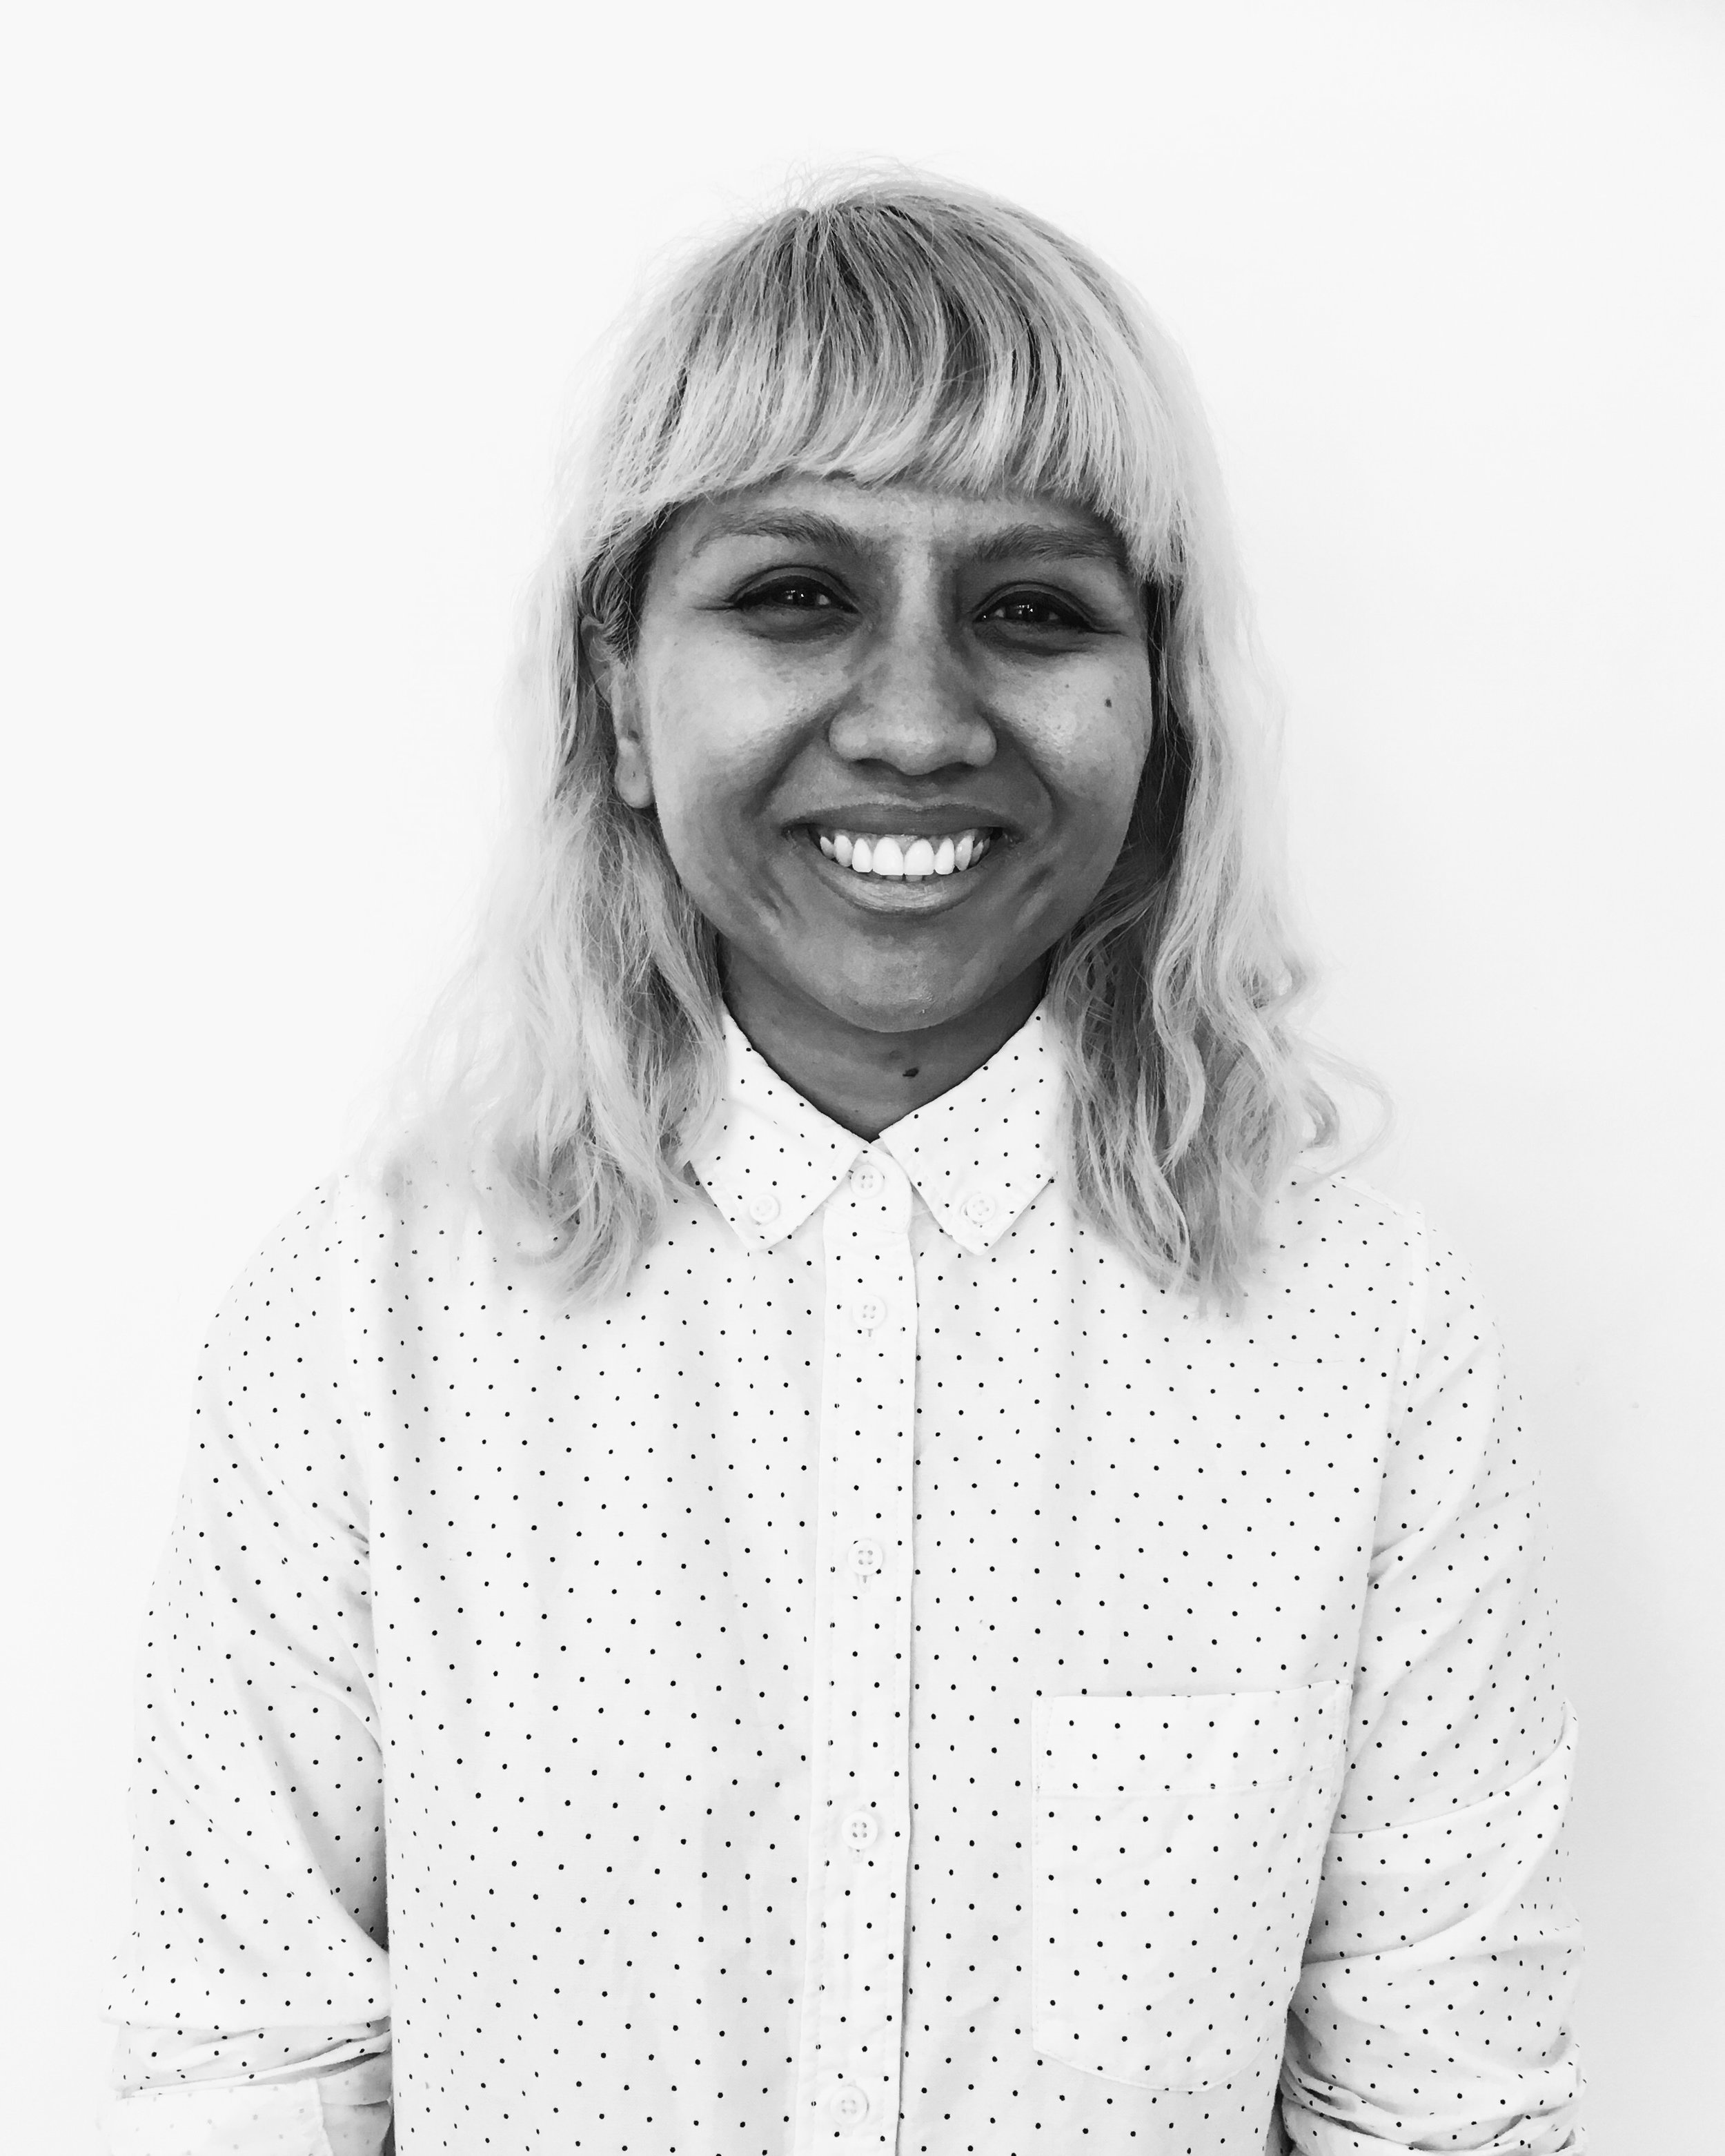 """Nabilah Said  is a playwright, freelance writer, reviewer and poet. Nabilah was a former journalist with the Straits Times before leaving to do an MA in Writing for Performance at Goldsmiths, University of London. Her plays have been presented by theatre companies Teater Ekamatra, The Necessary Stage and Bhumi Collective and read in London's Bunker Theatre and Arcola Theatre. During her residency, she will be writing a new play for Projek Bahasa Pengarah 2, an initiative by akulah BIMBO SAKTI and Malay Heritage Centre, as well as working on other theatre projects.   PERFORMANCE / PANEL:  """"NEW PATHS / NEW WORKS"""" (with Corrie Tan), Sing Lit Station, 20 Mar 2019, 8pm–10pm"""